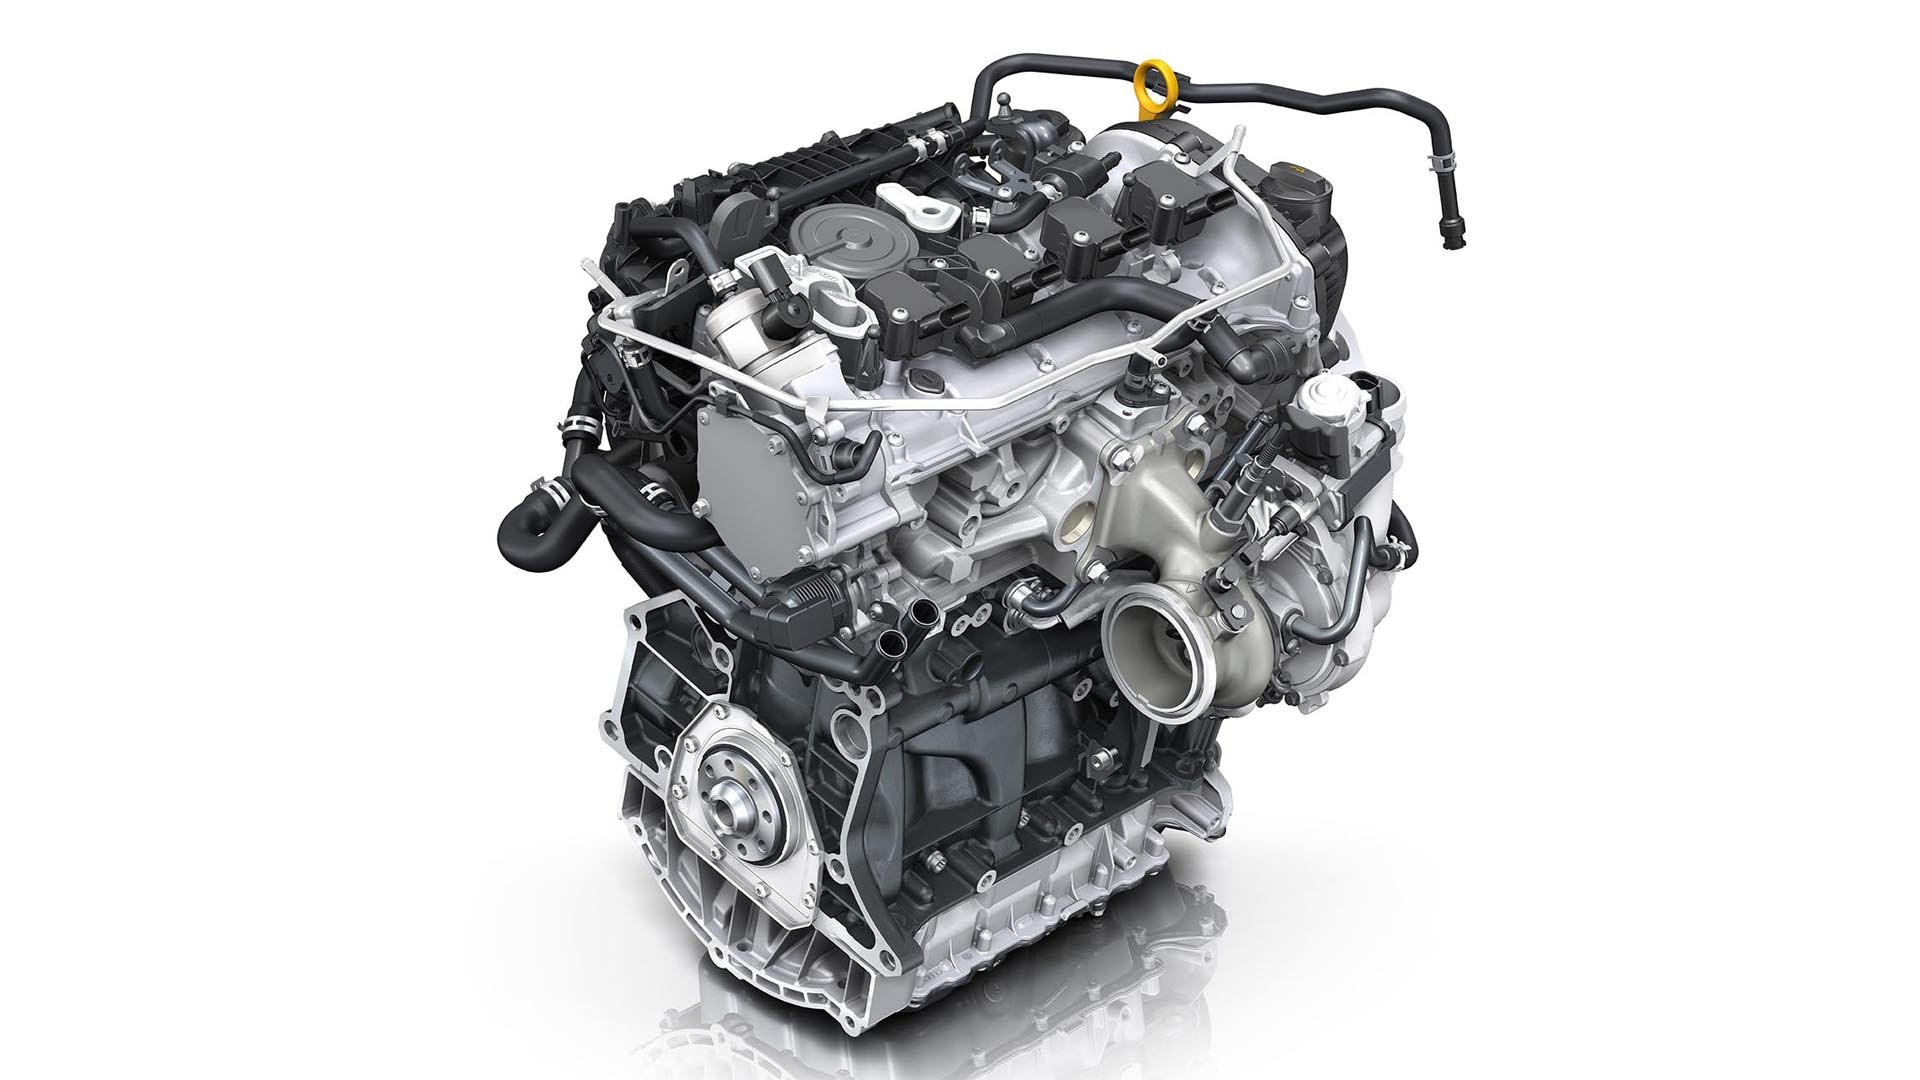 The Definitive Guide To The VW Mk7 GTI EA888 Engine (Gen 3)